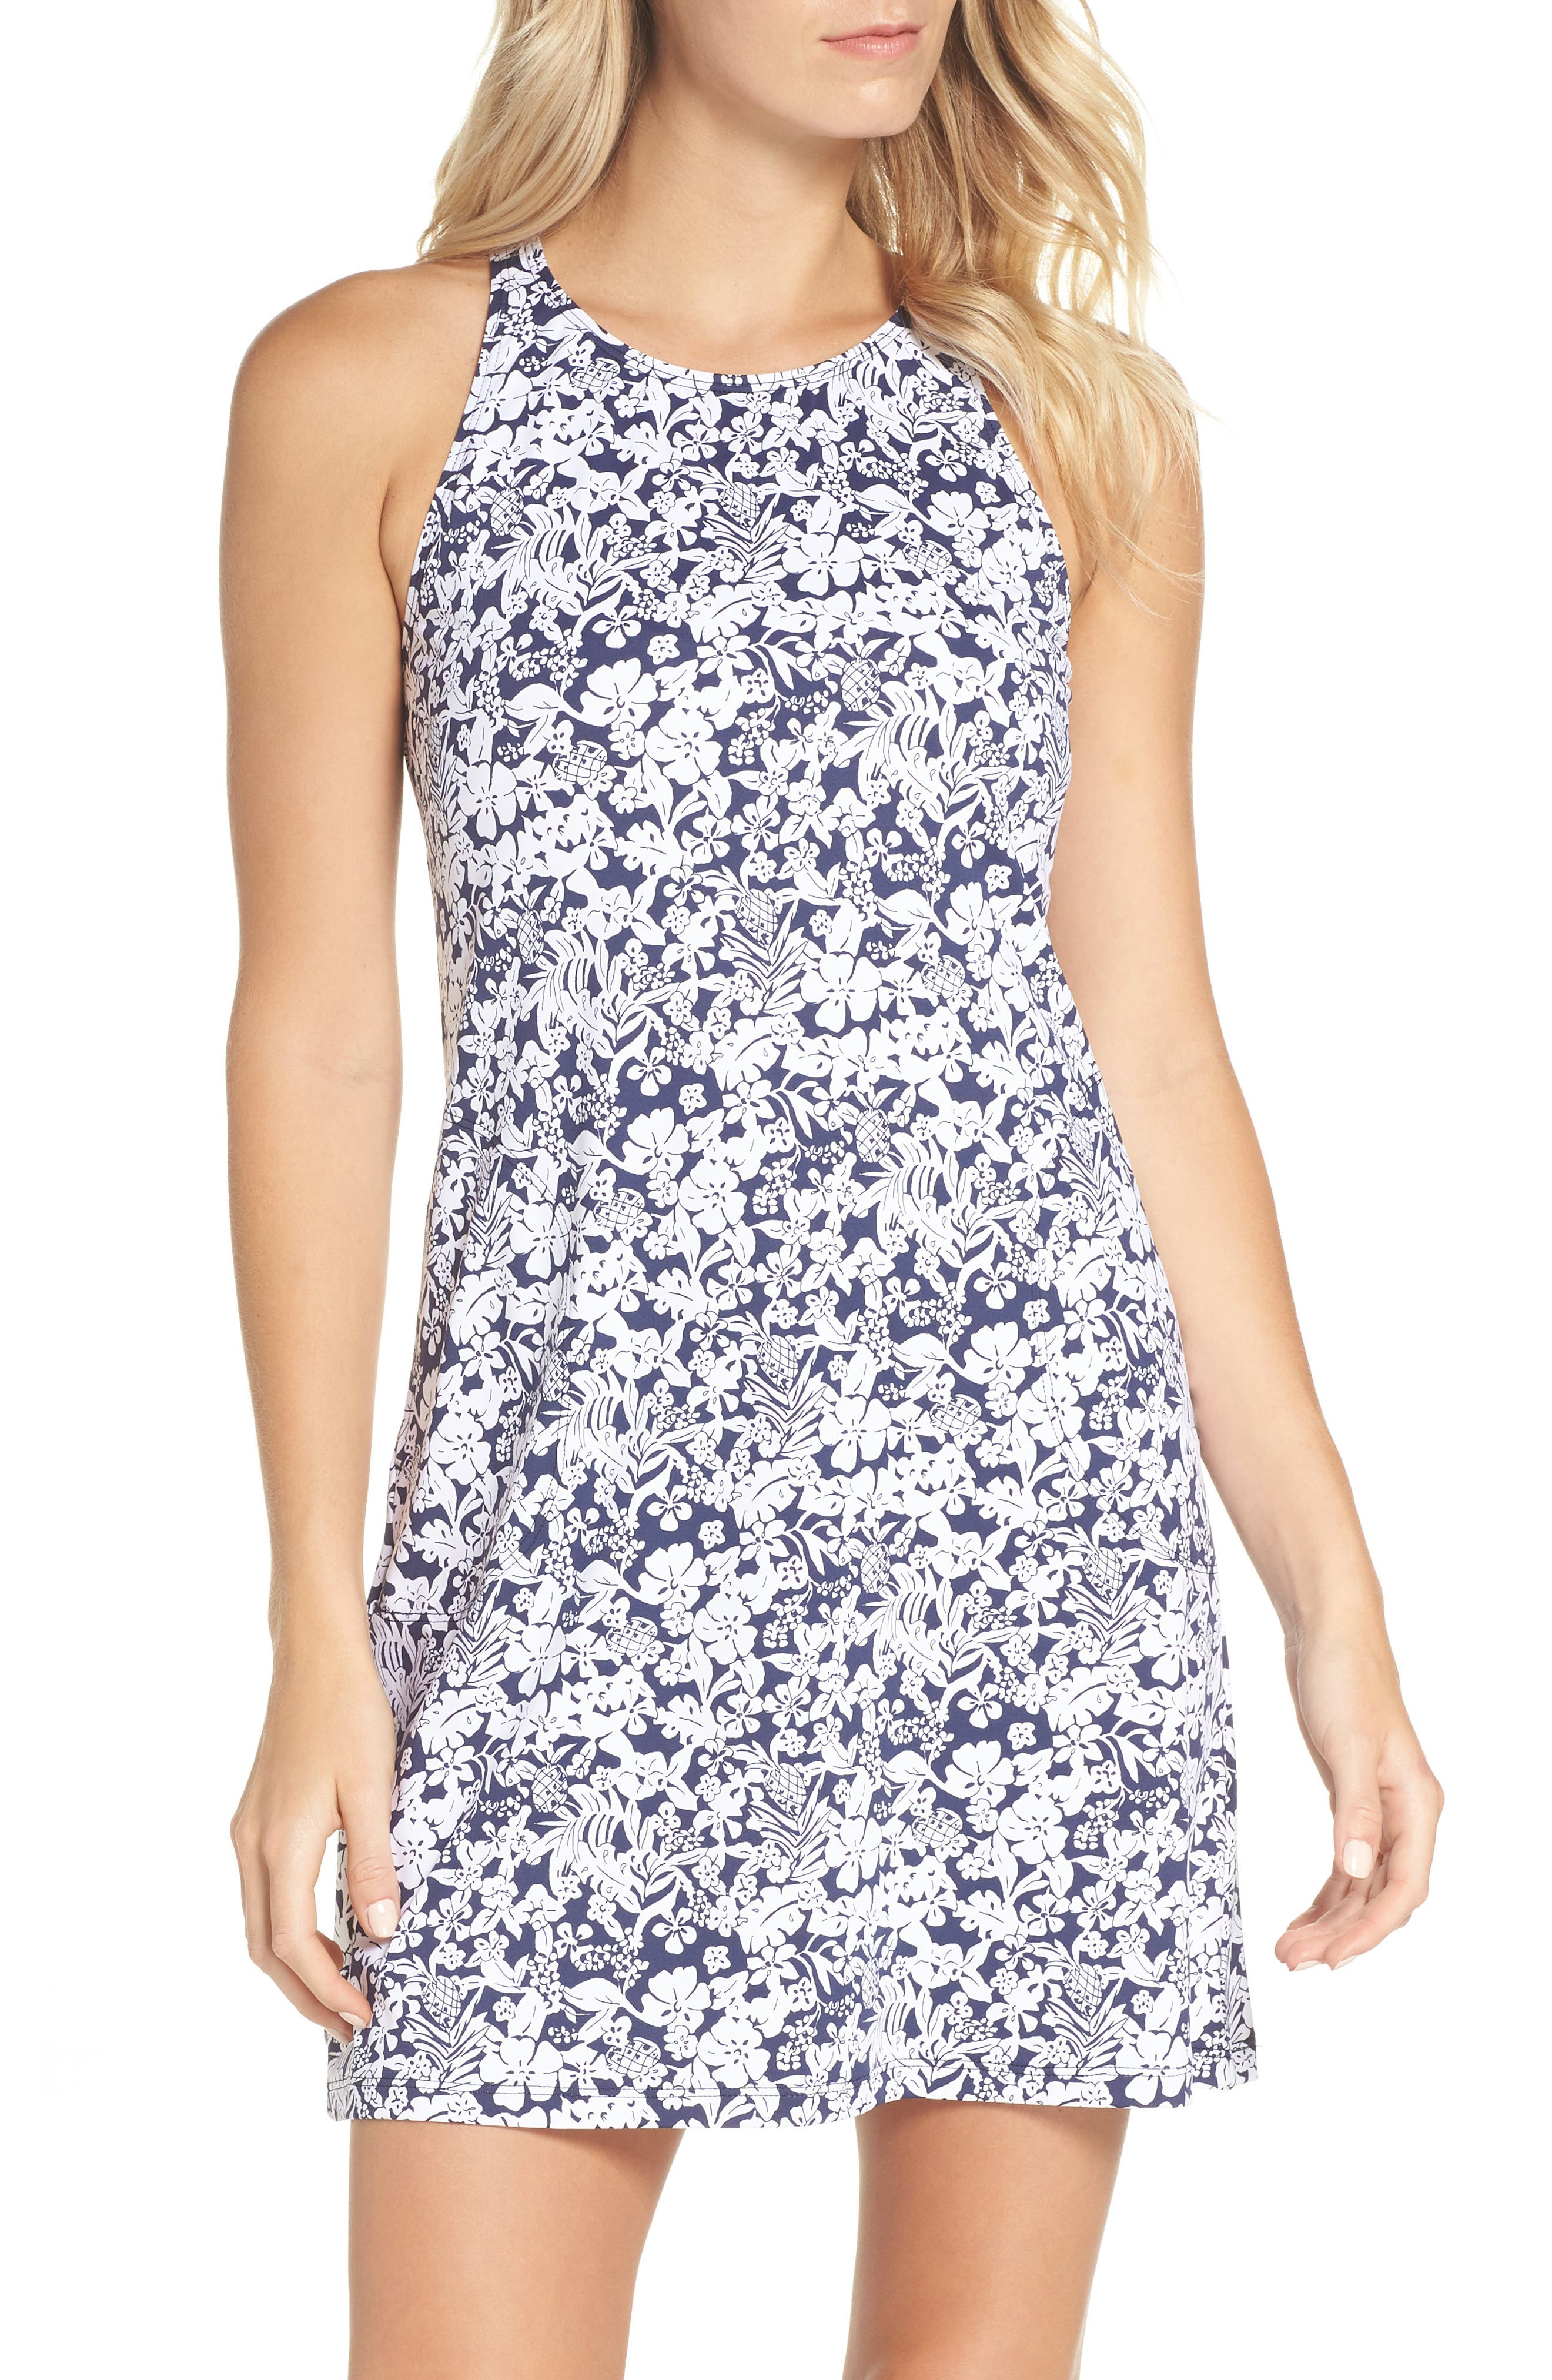 Riviera Tiles Cover-Up Dress,                         Main,                         color, Mare Blue